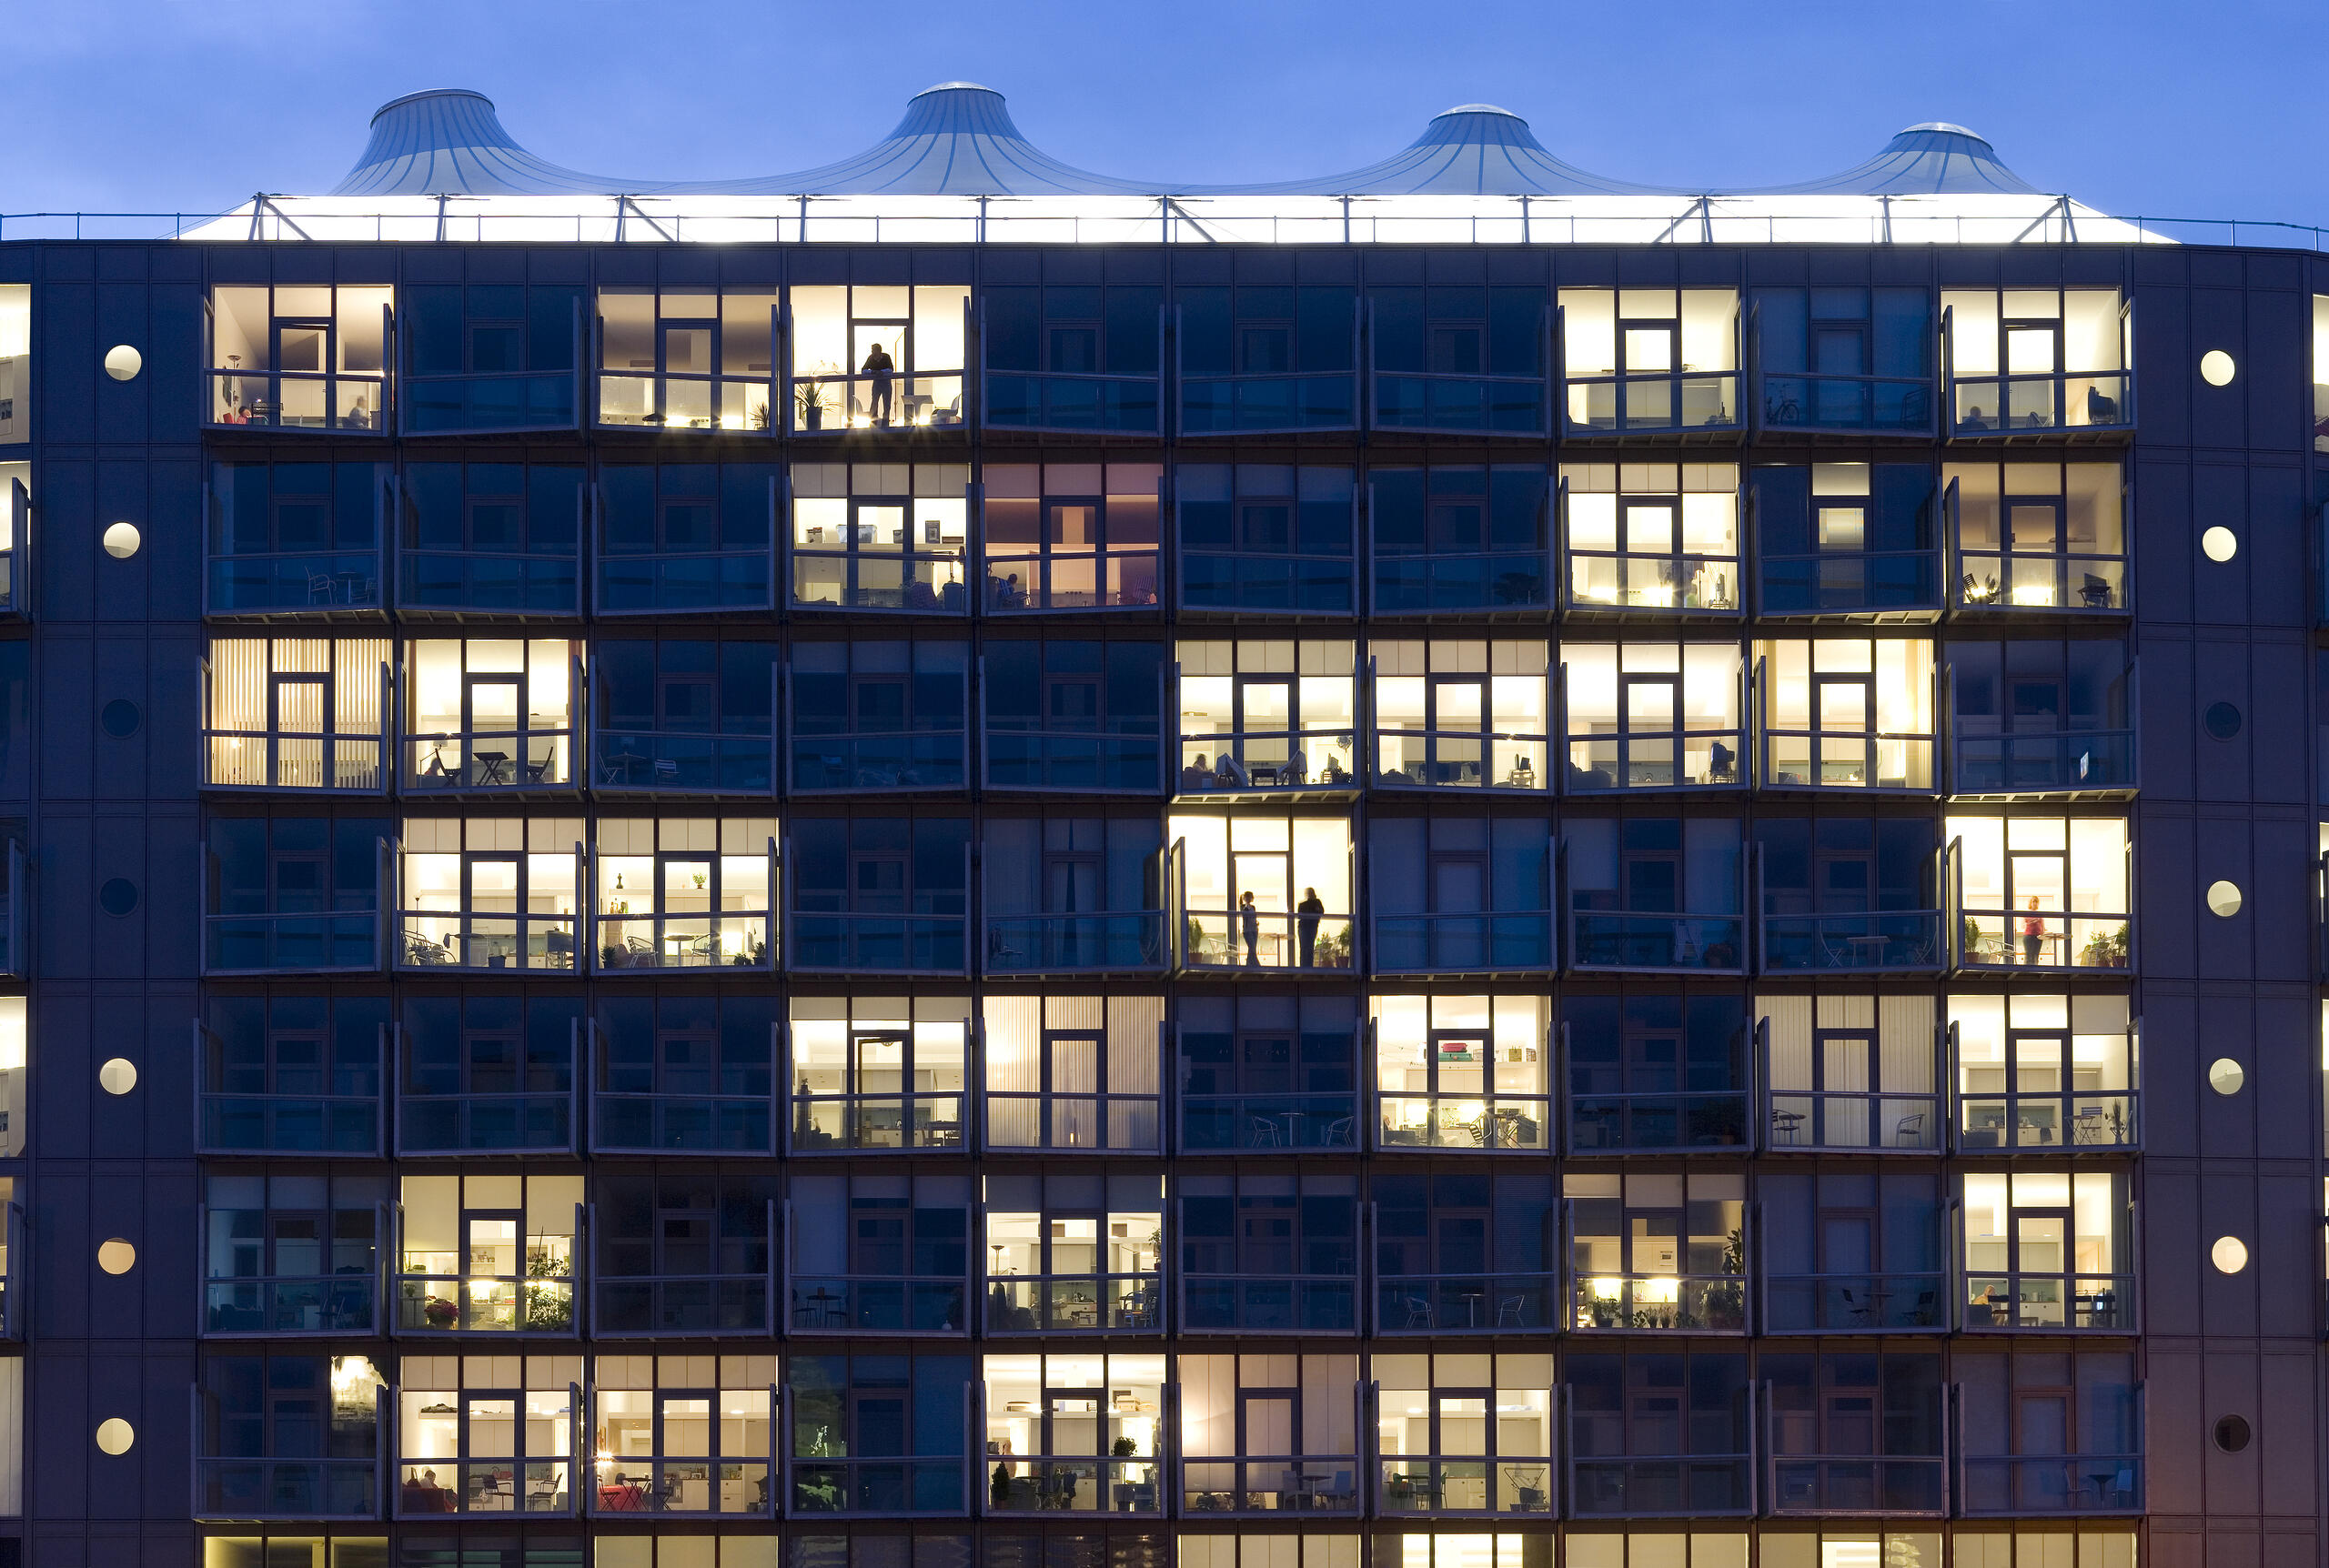 close up of the Abito Apartments facade at night showing a smattering of apartments with the lights on